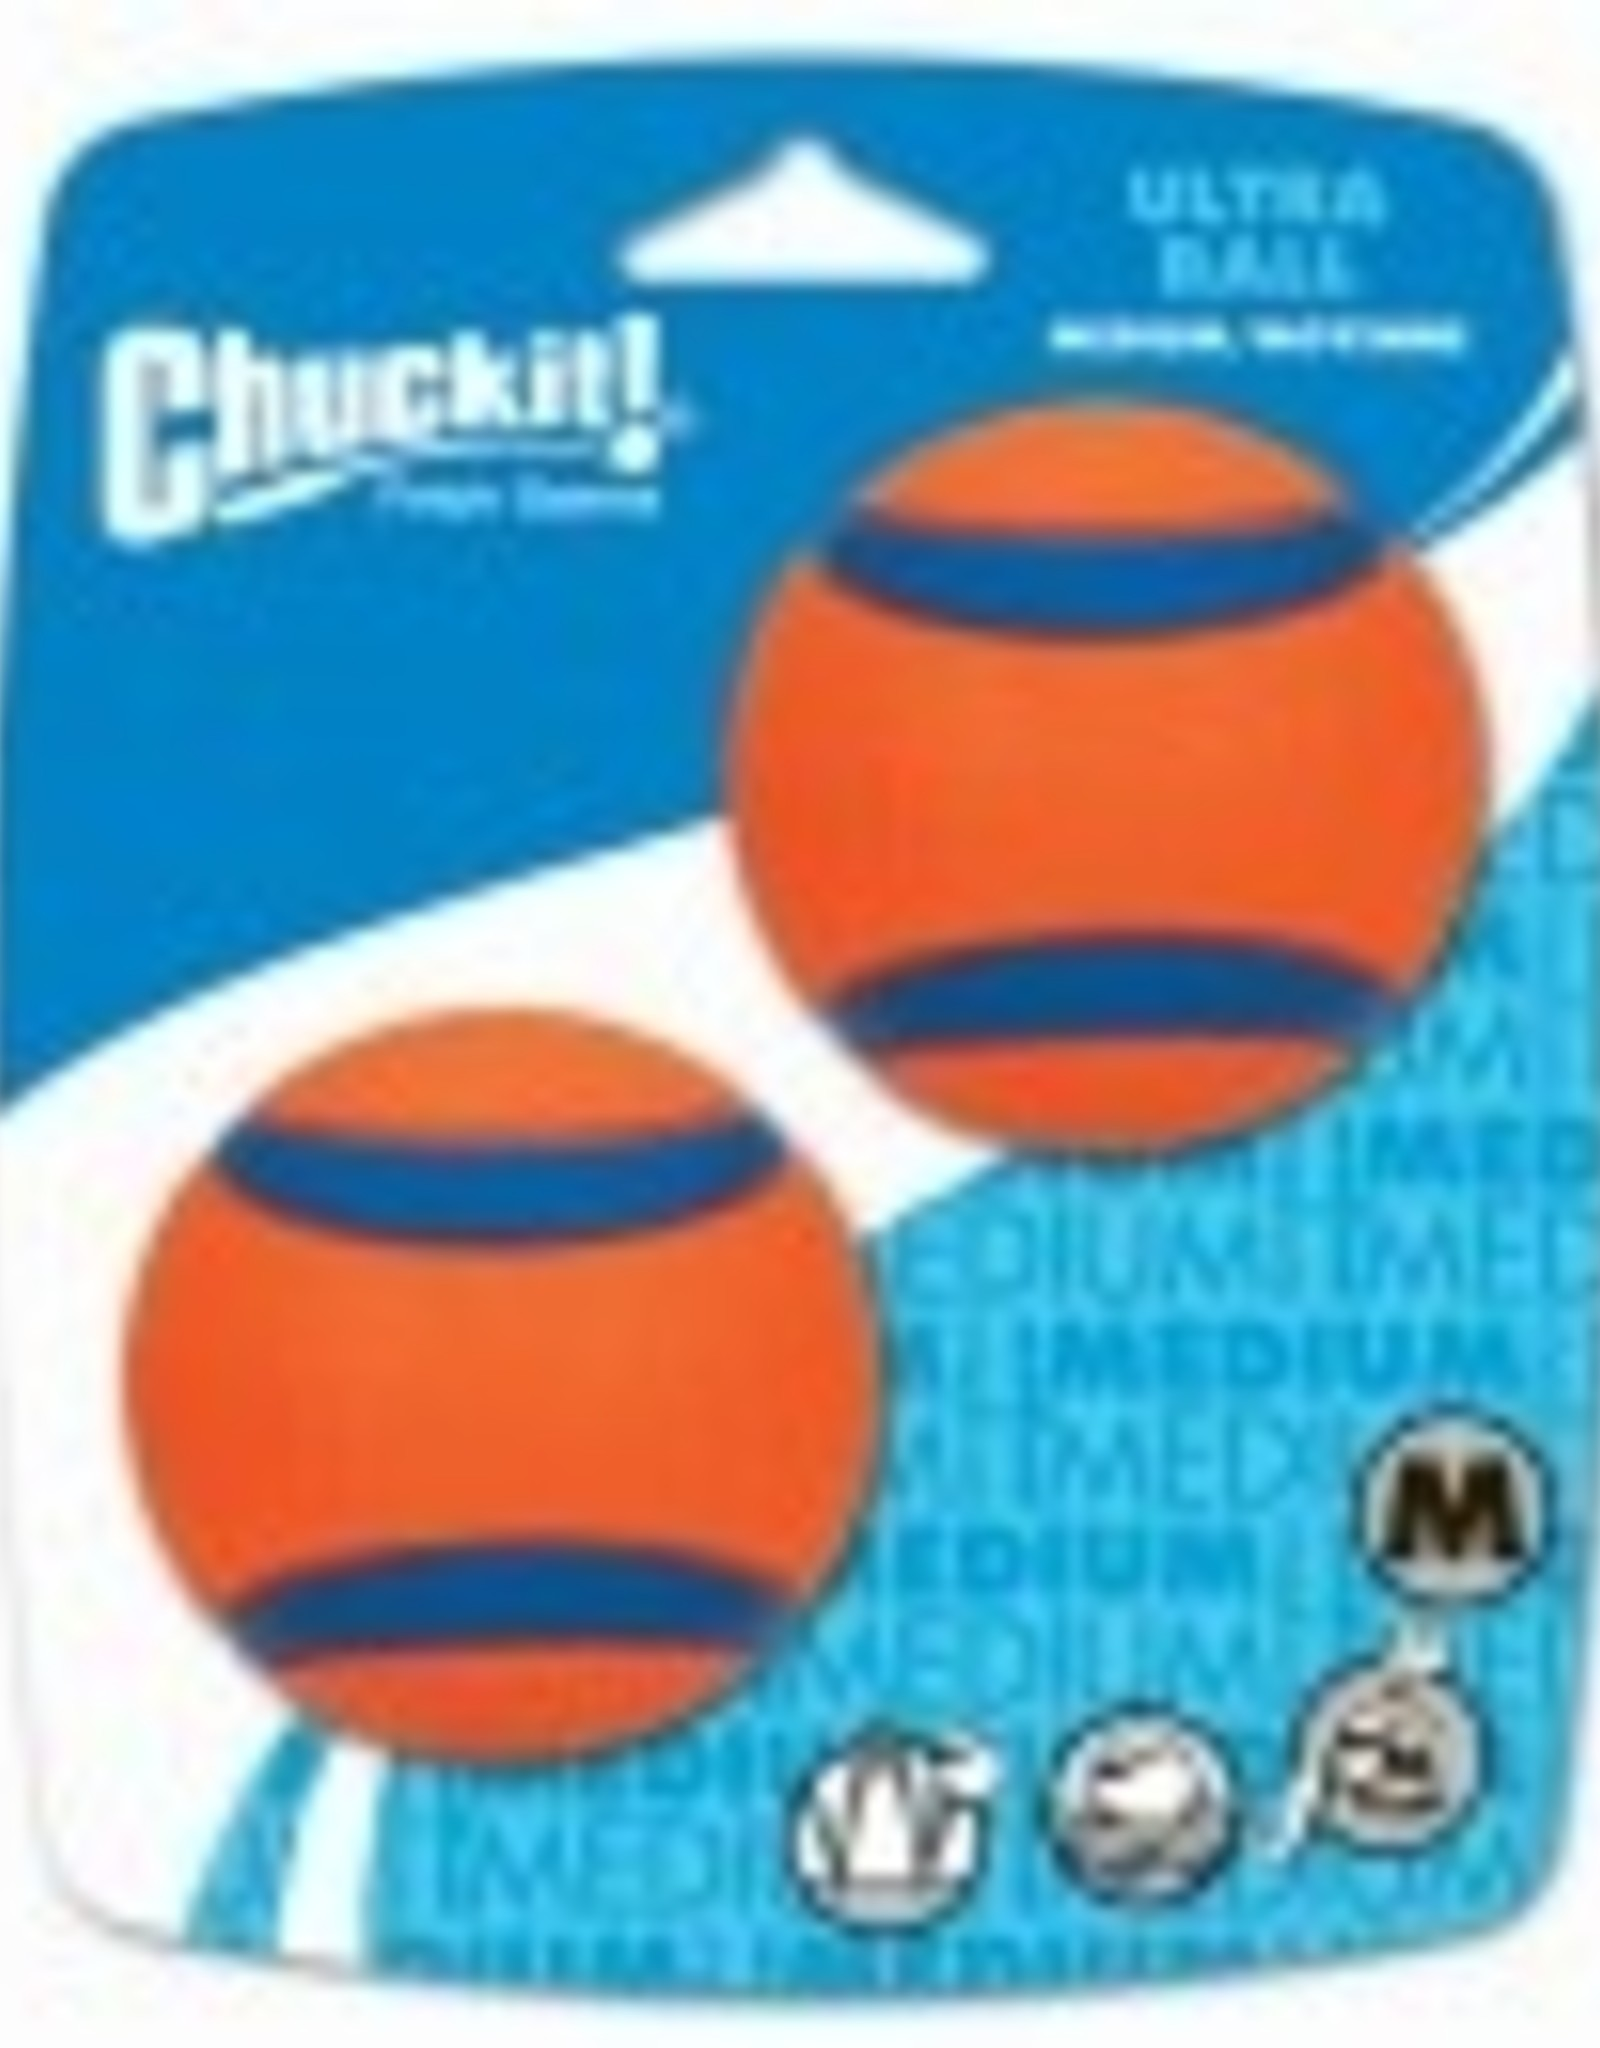 CHUCK IT ULTRA BALL ORANGE 2IN 2PK